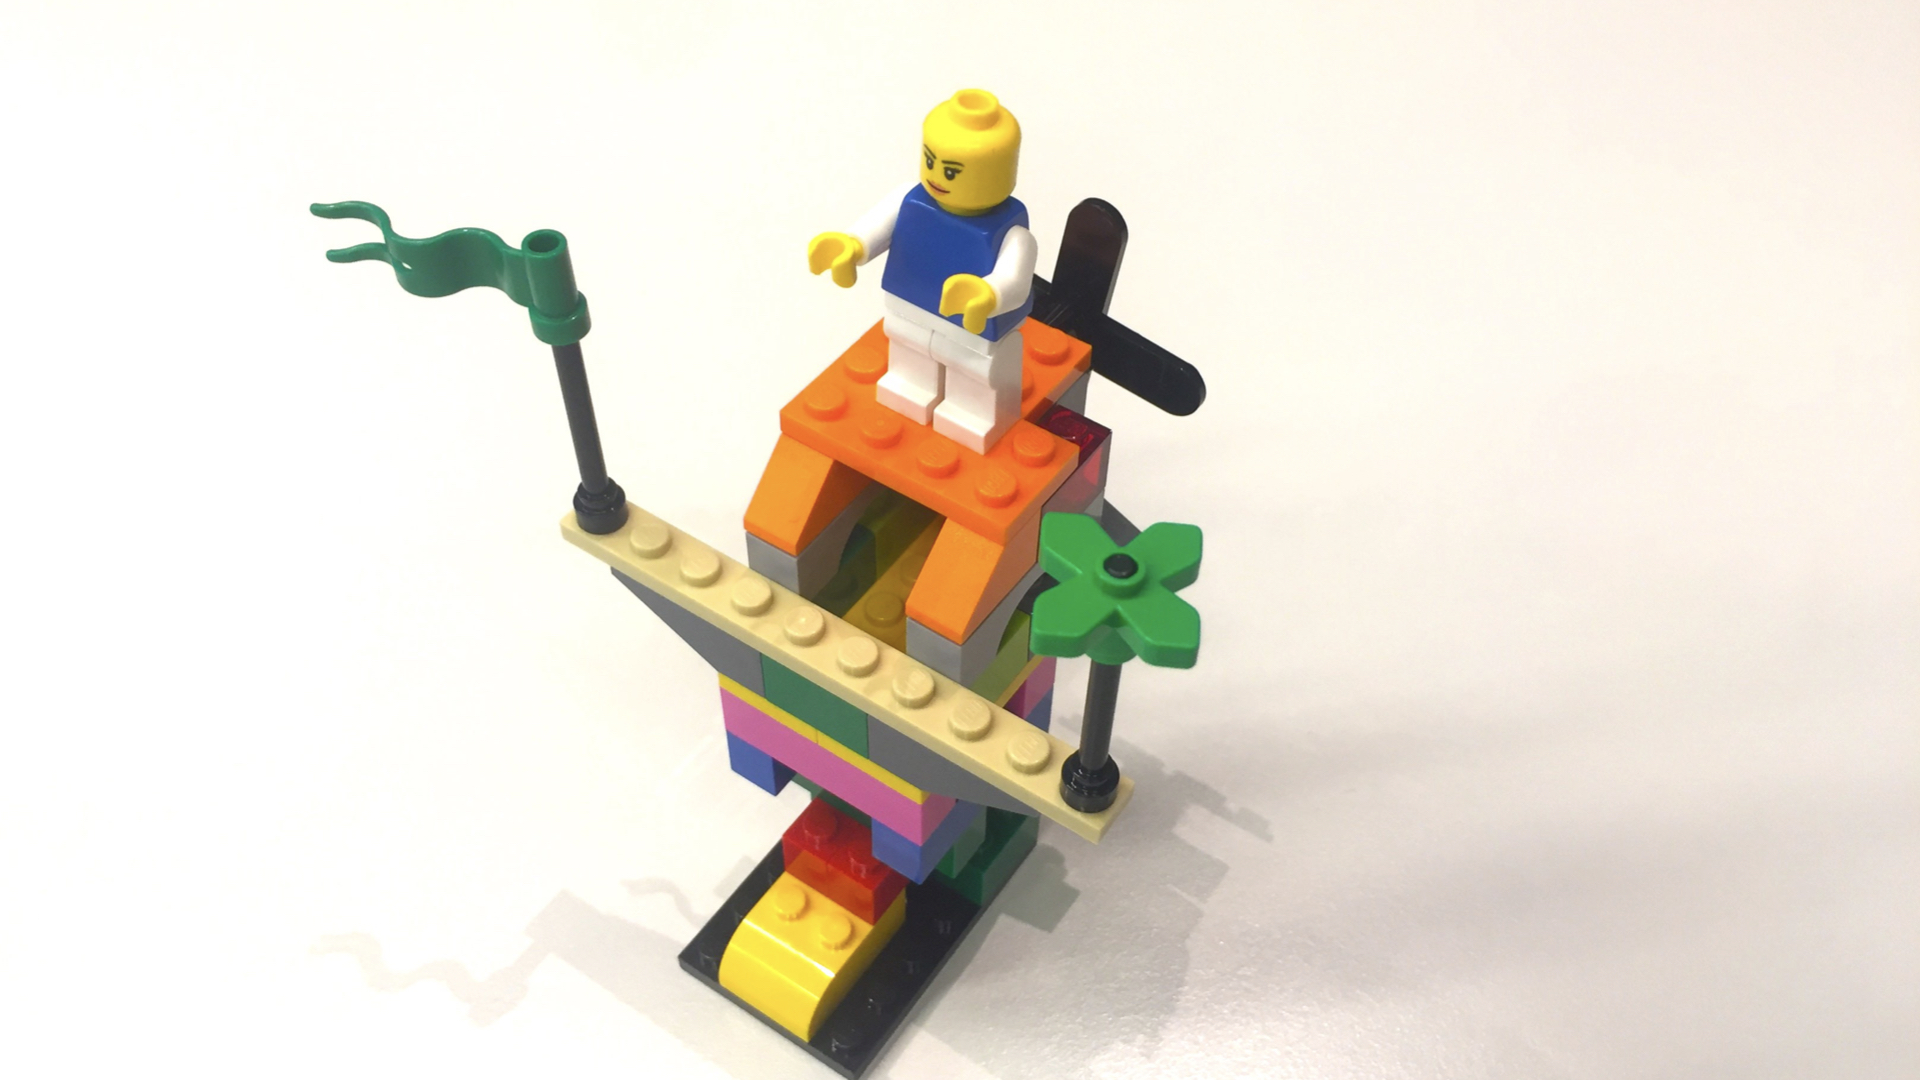 A Lego figure operates a colourful fantasy vehicle. Orange Council also develops strategies through playful evaluation.